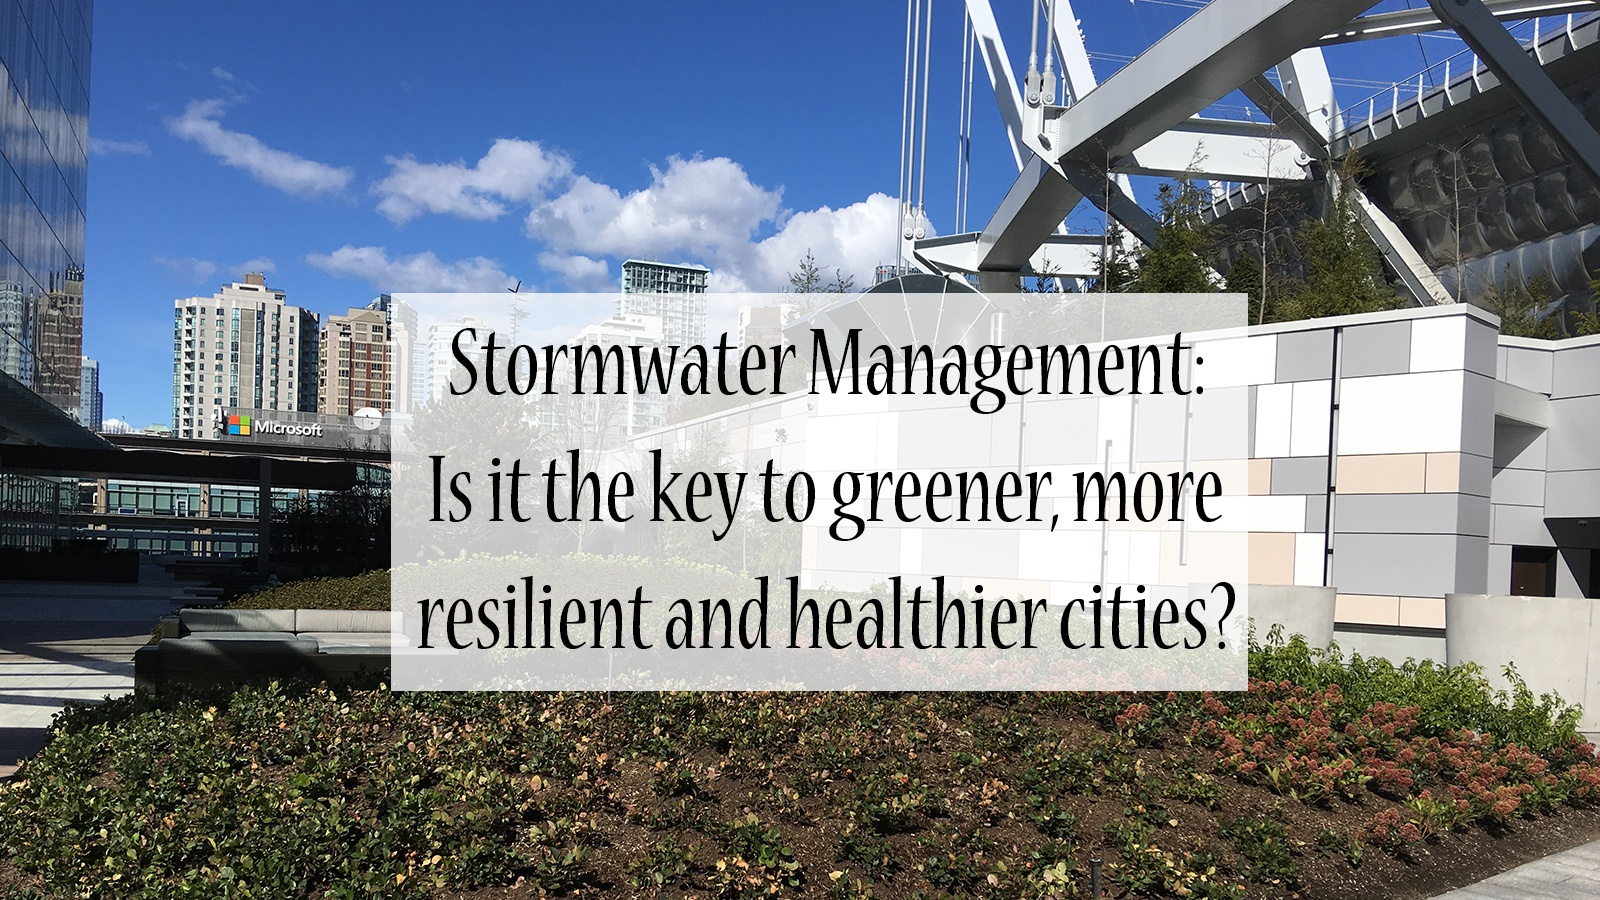 Stormwater Management - key to greener, more resilient and healthier cities